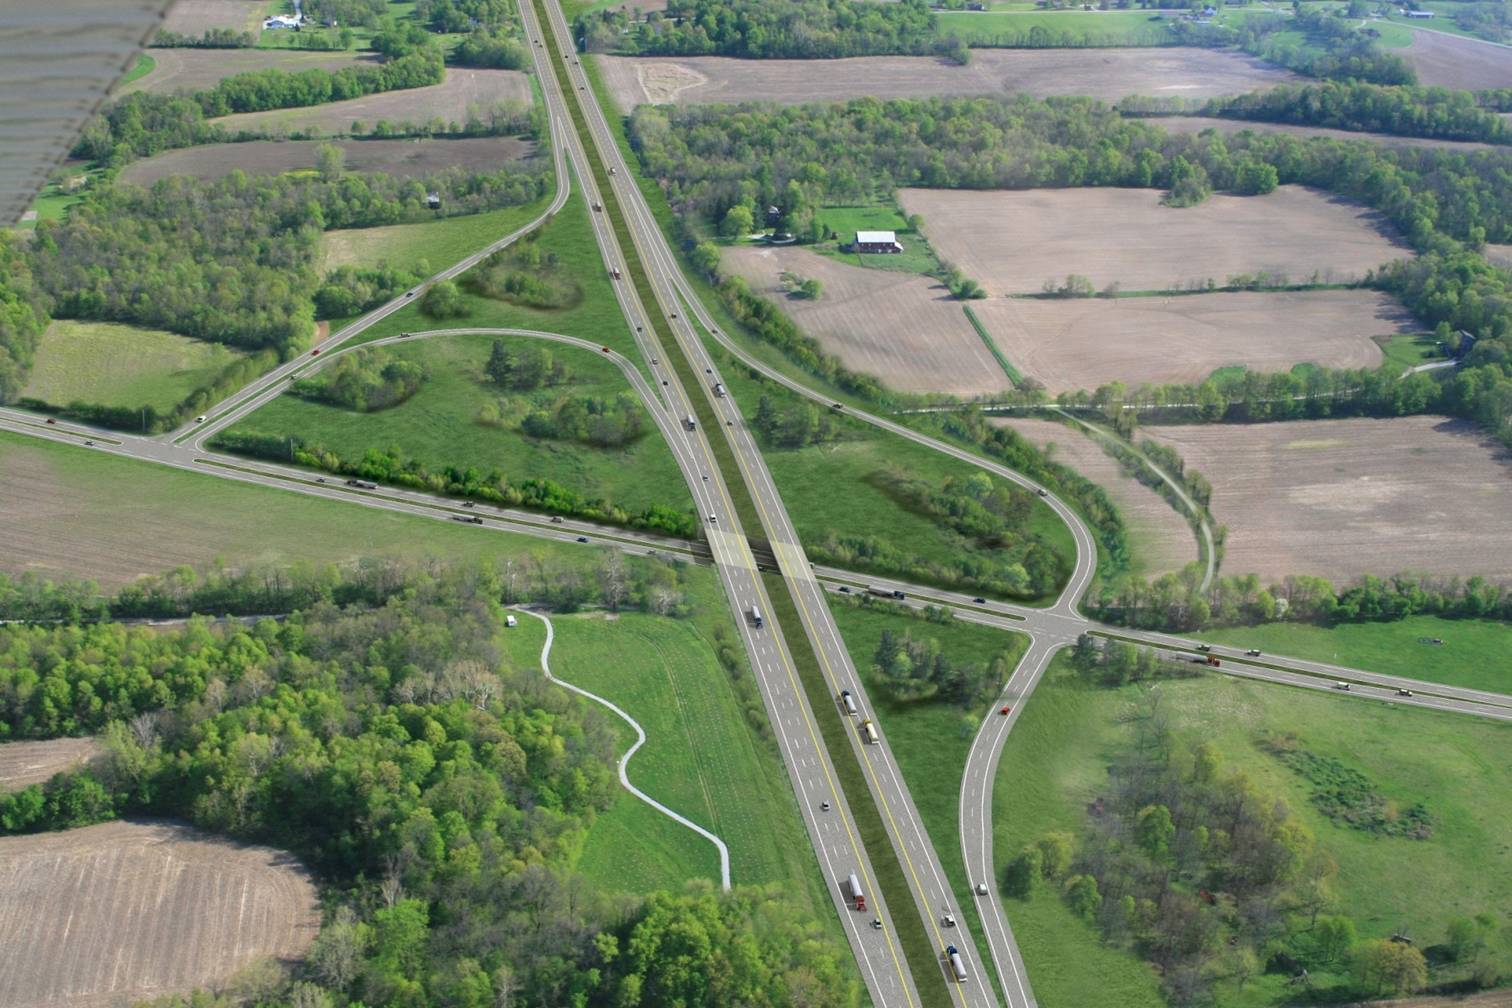 A rendering of the new U.S.31 and Ind. 38 interchange